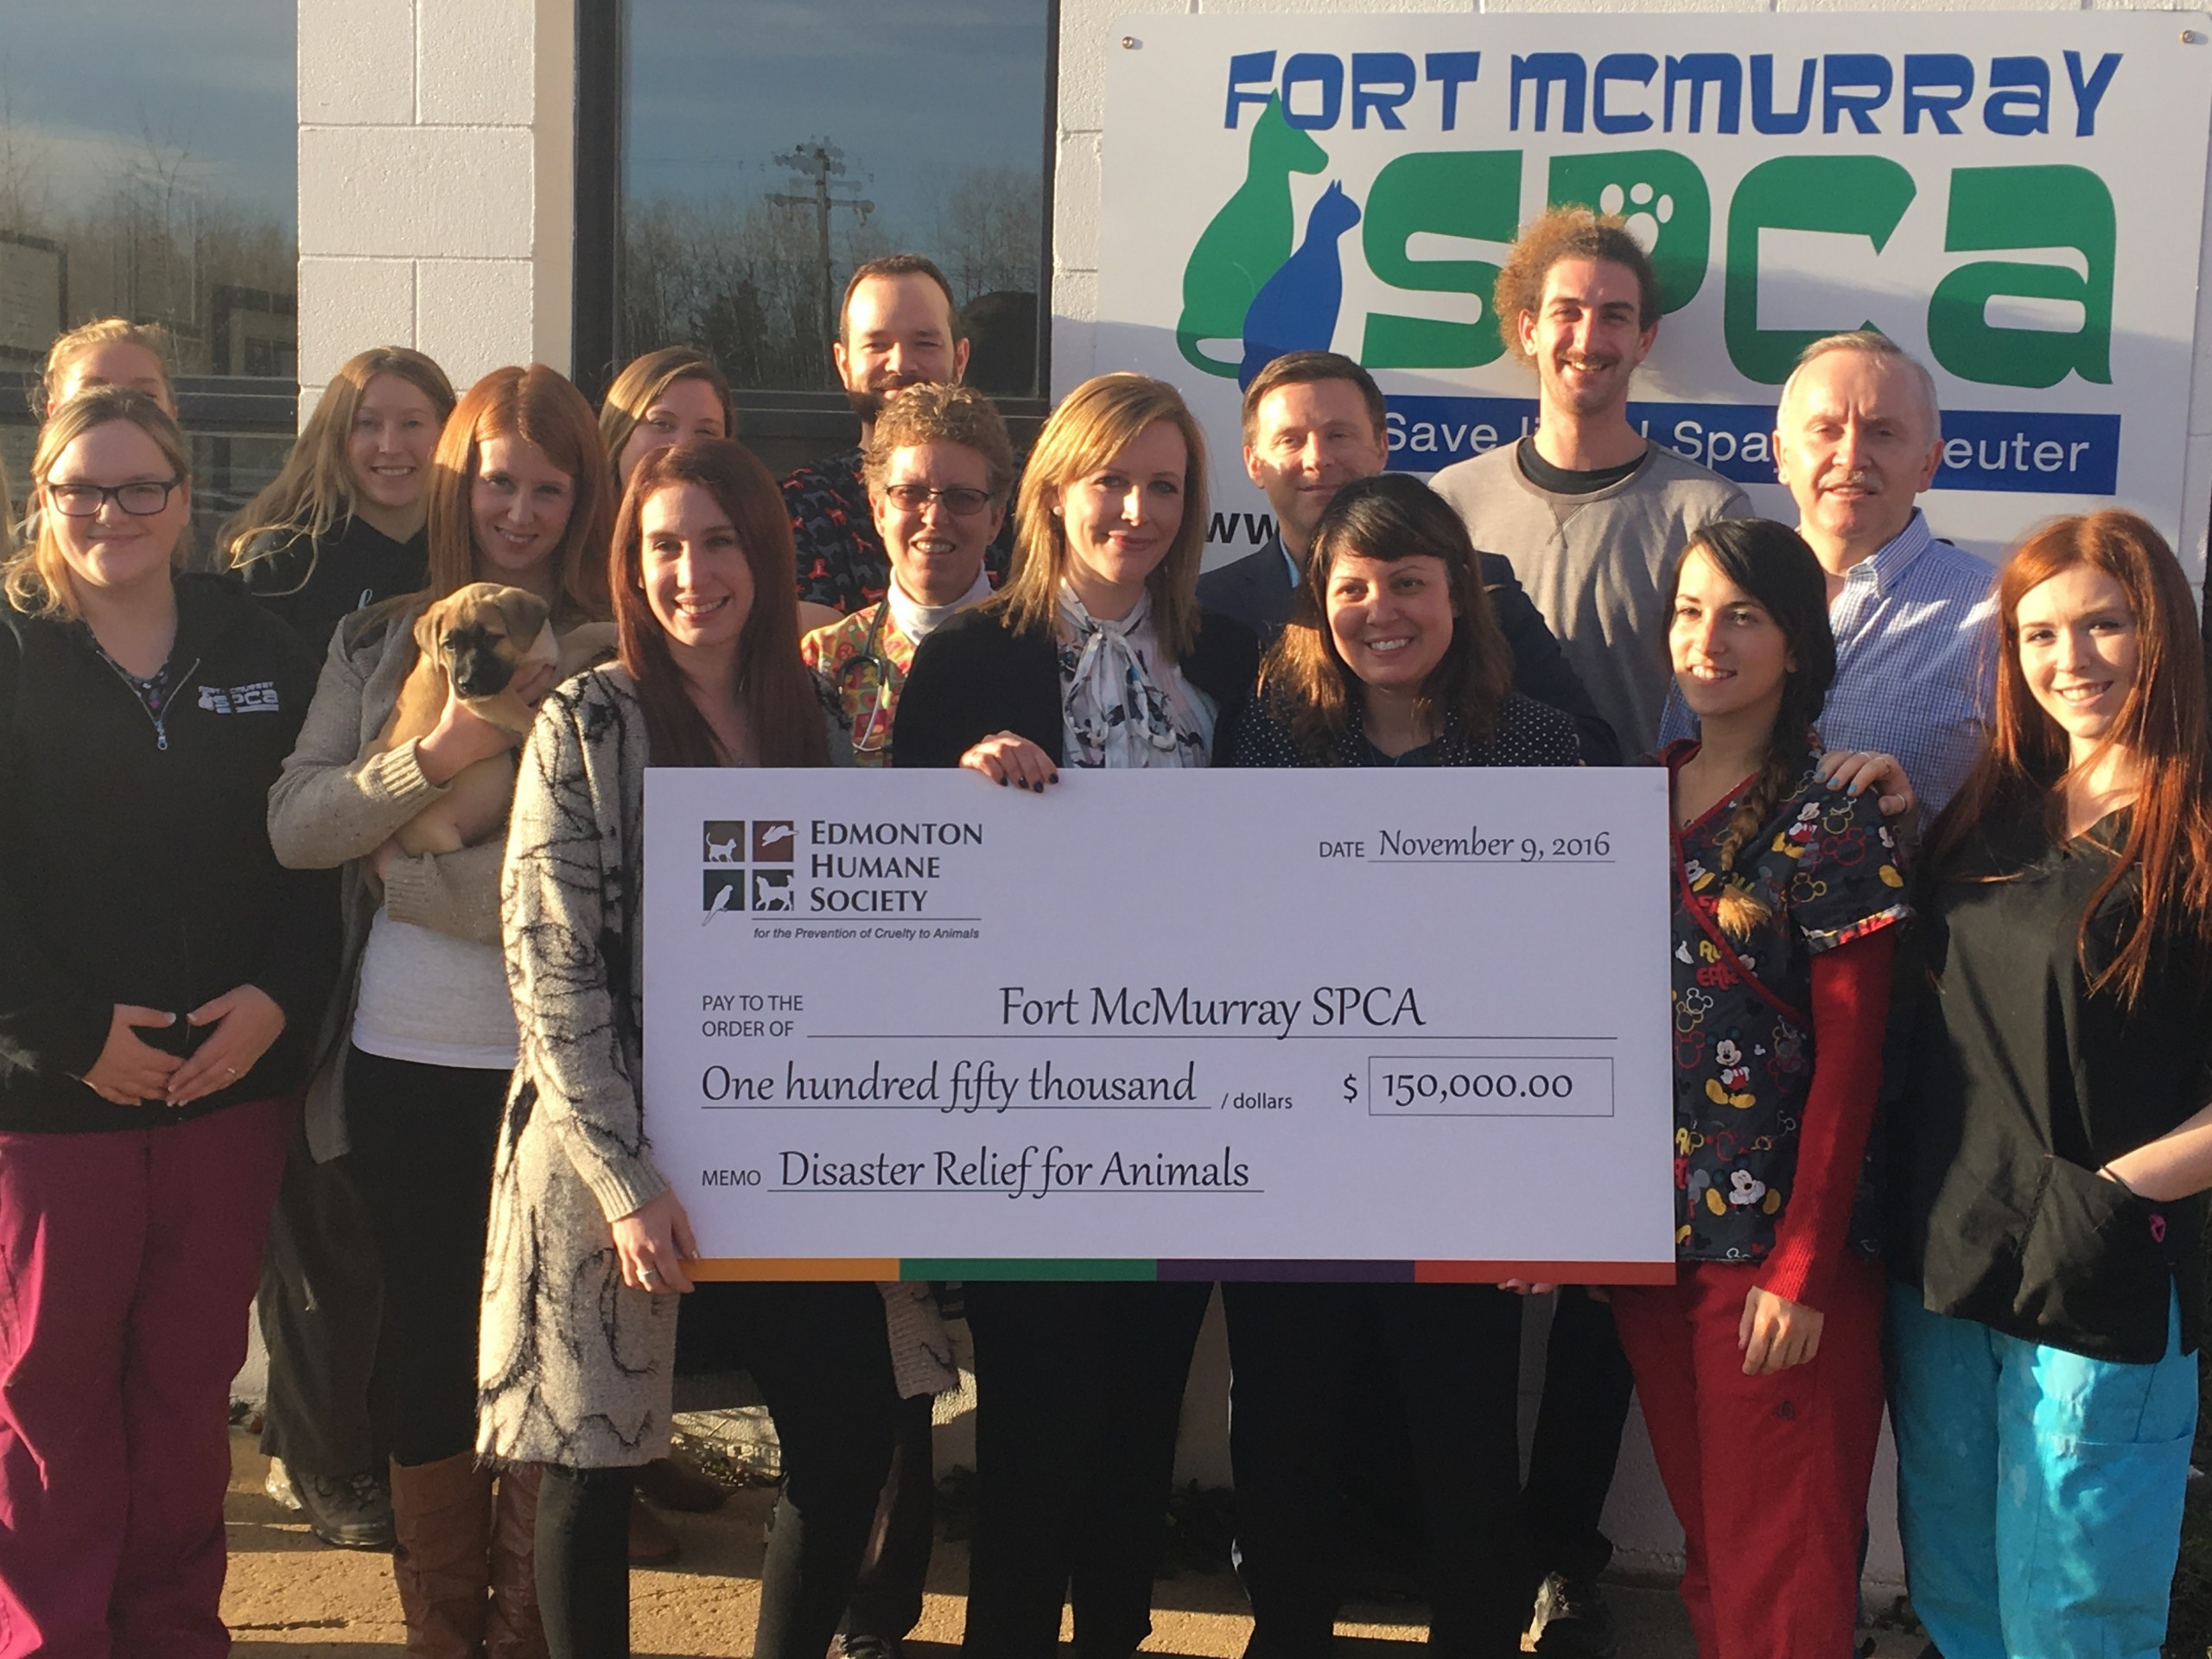 Fort McMurray SPCA receives large donation from Edmonton Humane Society